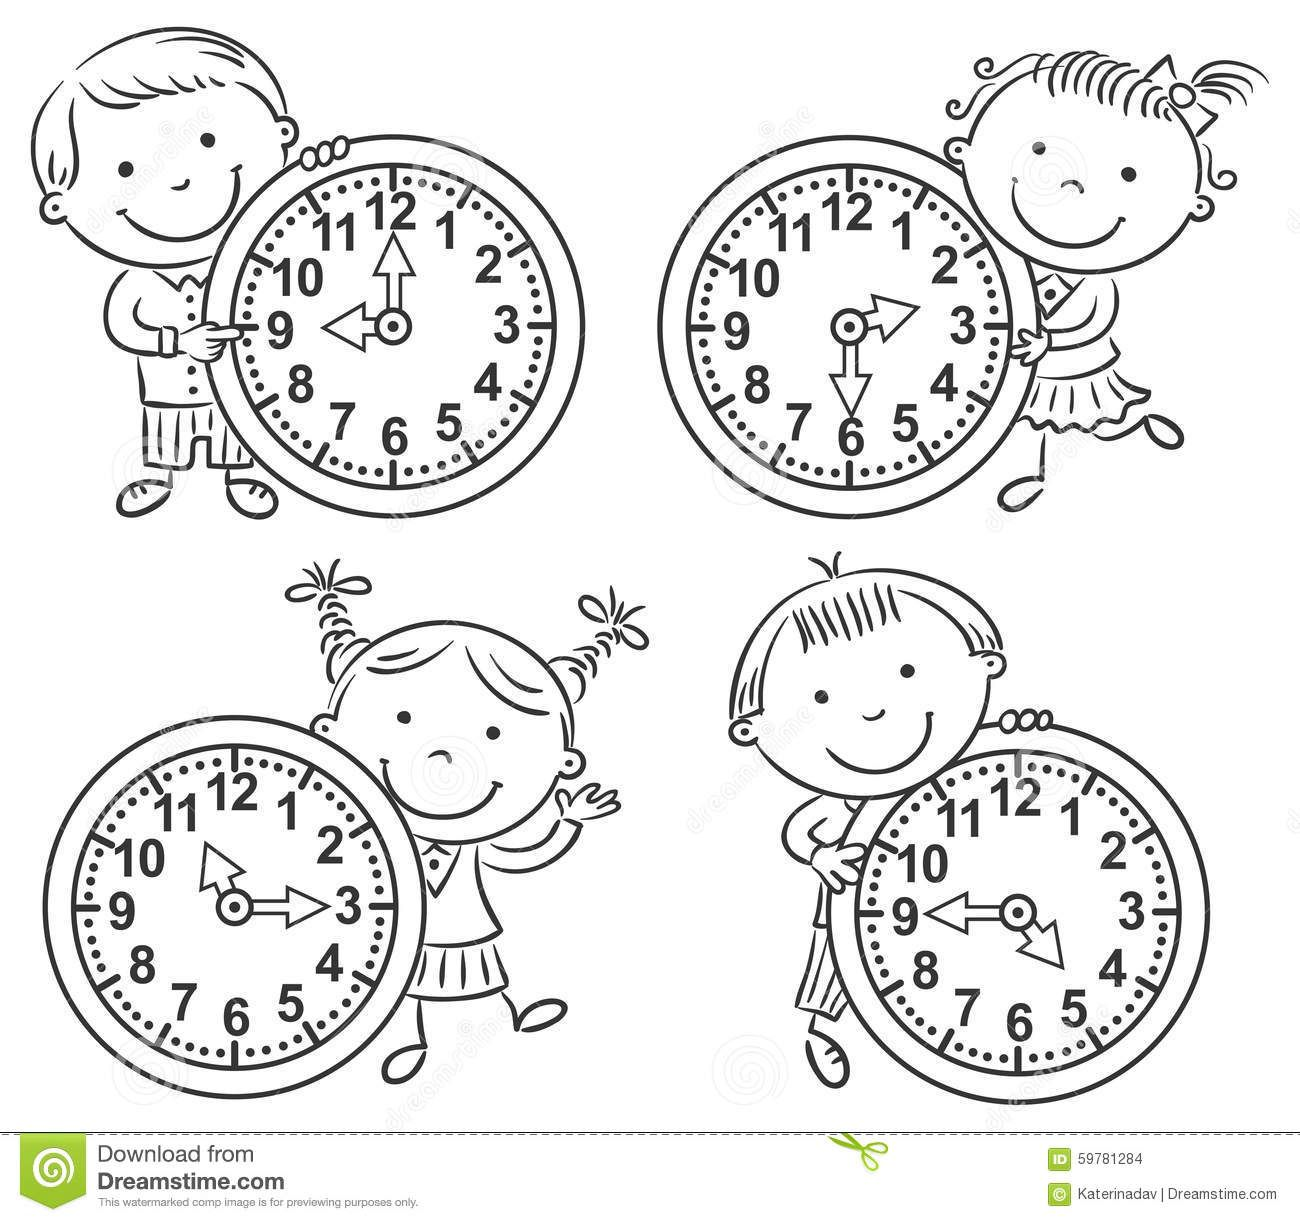 Workbooks worksheets for telling time : Imagen relacionada | aprende a ver la hora | Pinterest ...